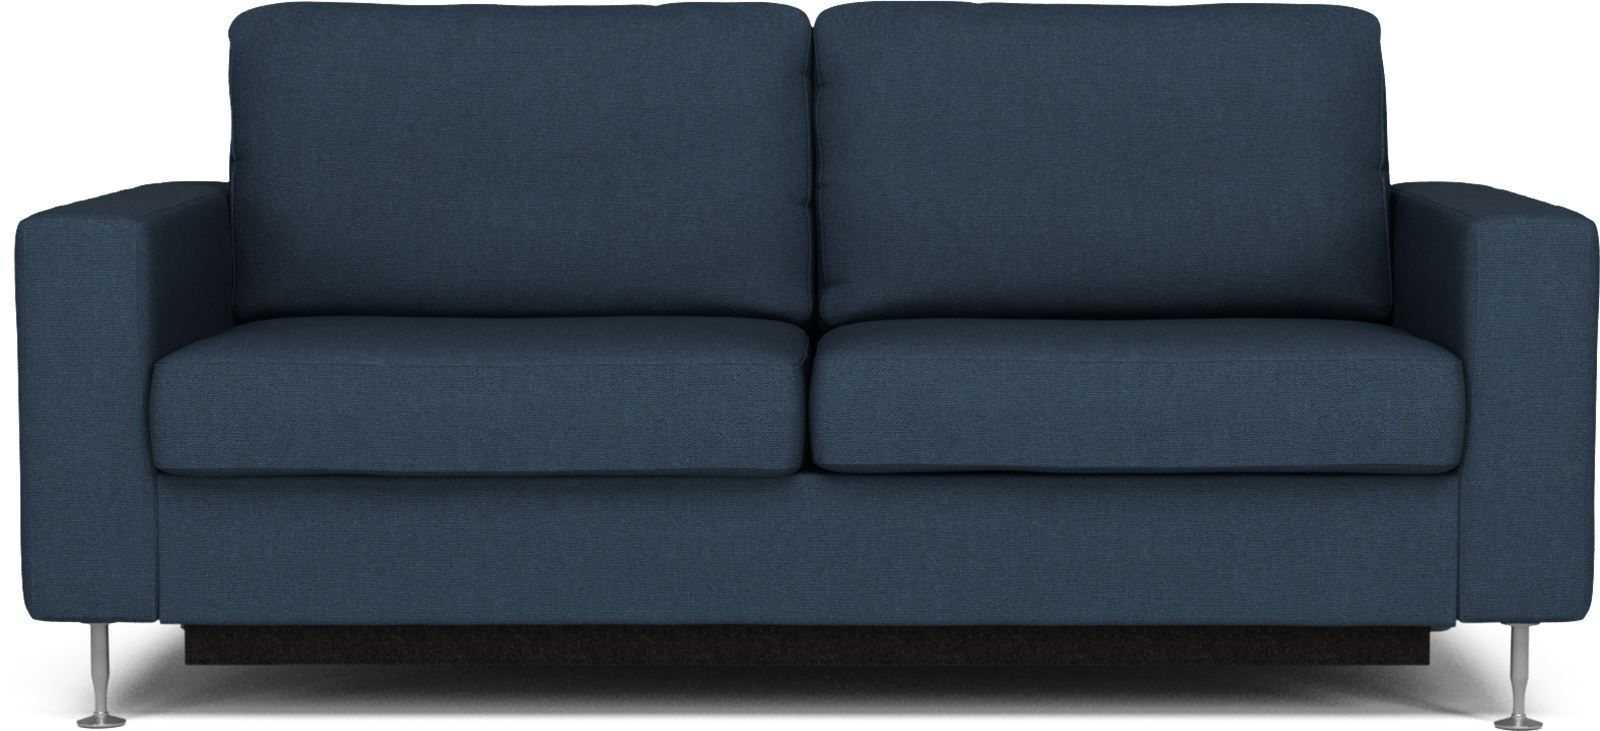 Modern Sectional Sofas Milano Sofabed Cold foam Mattress